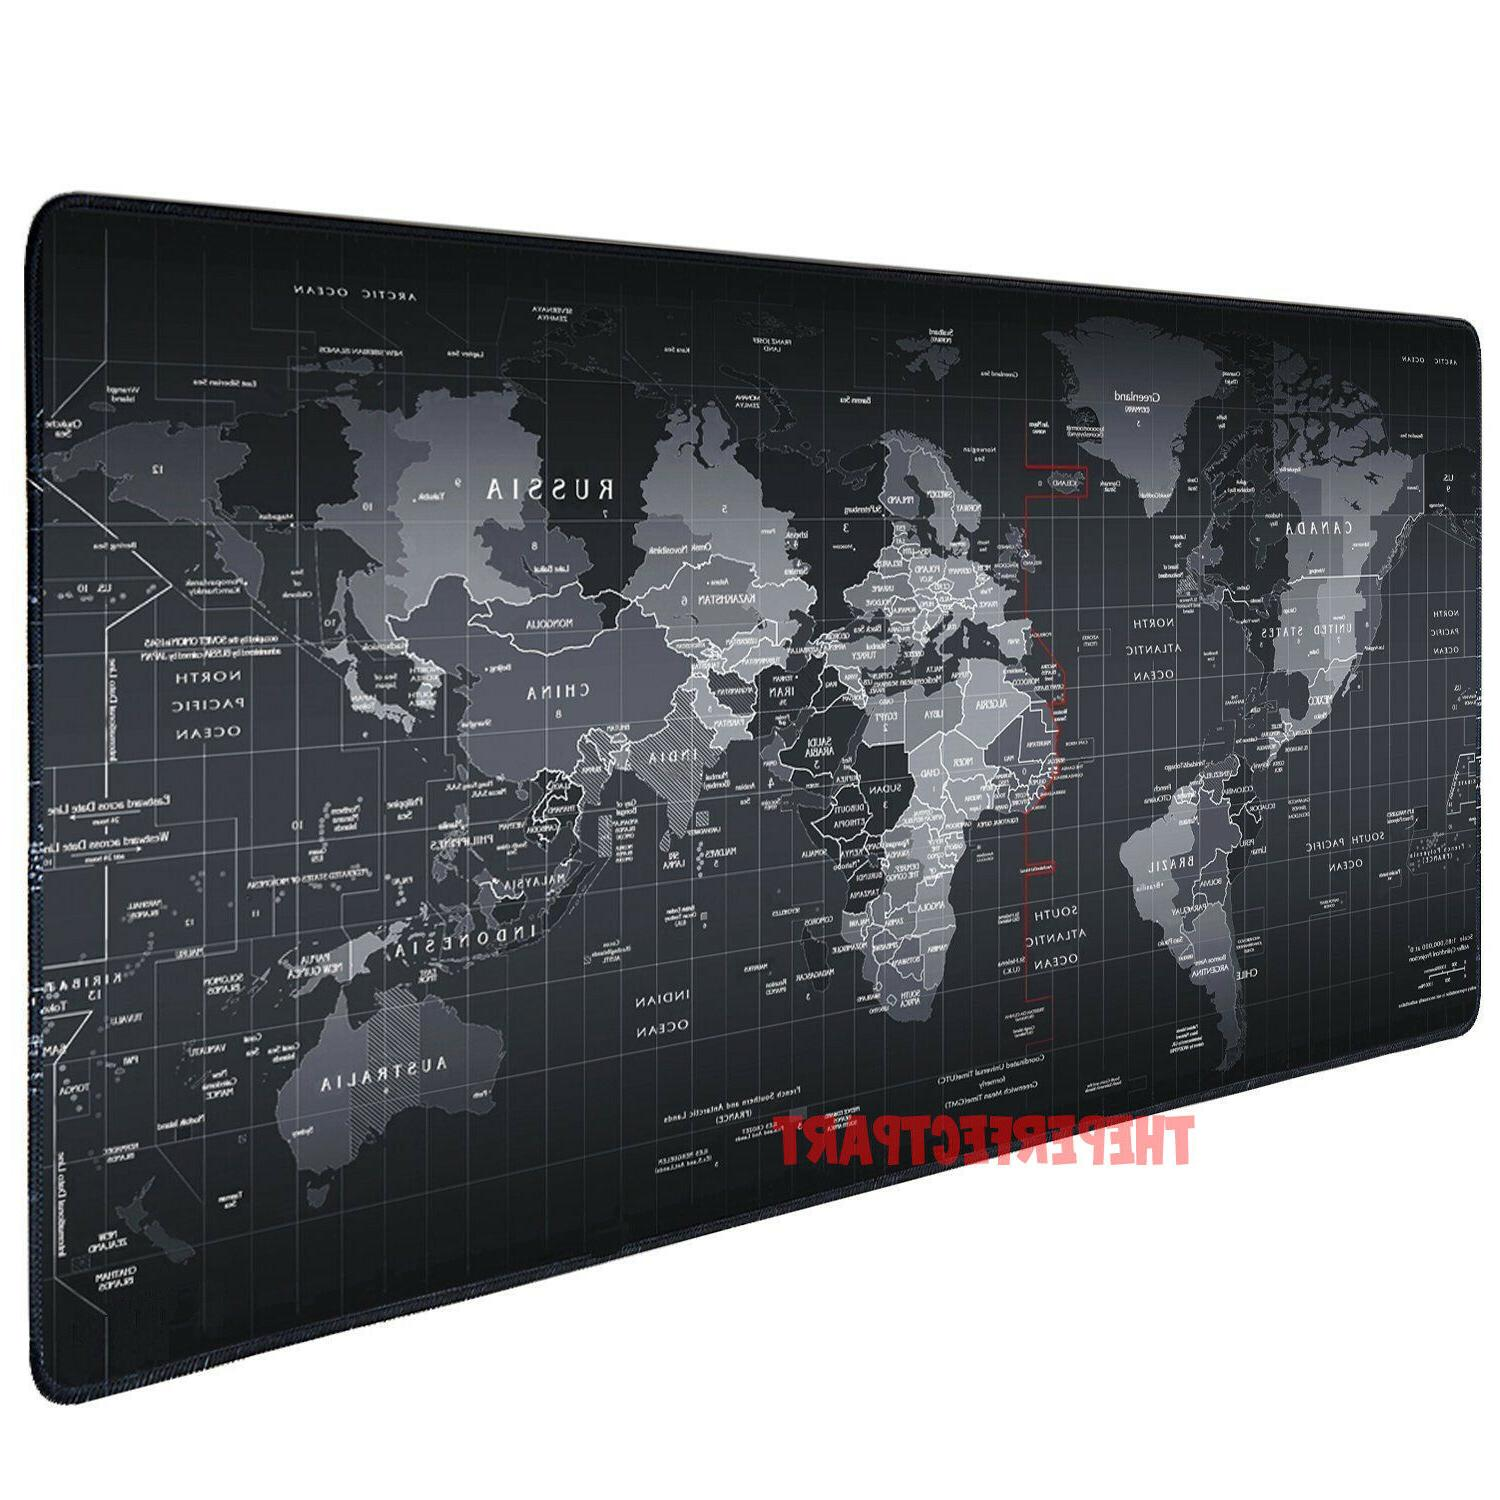 new extended gaming mouse pad large size